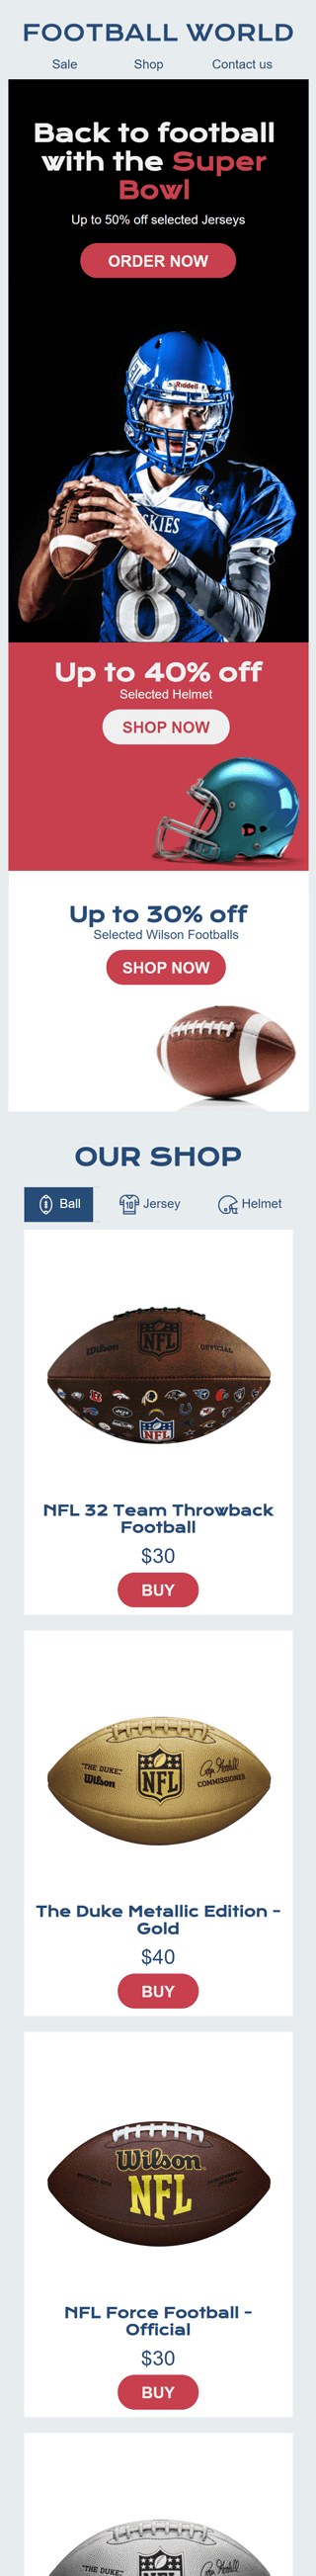 Super Bowl Email Template «Sport Attribute Shop» for Sports industry mobile view